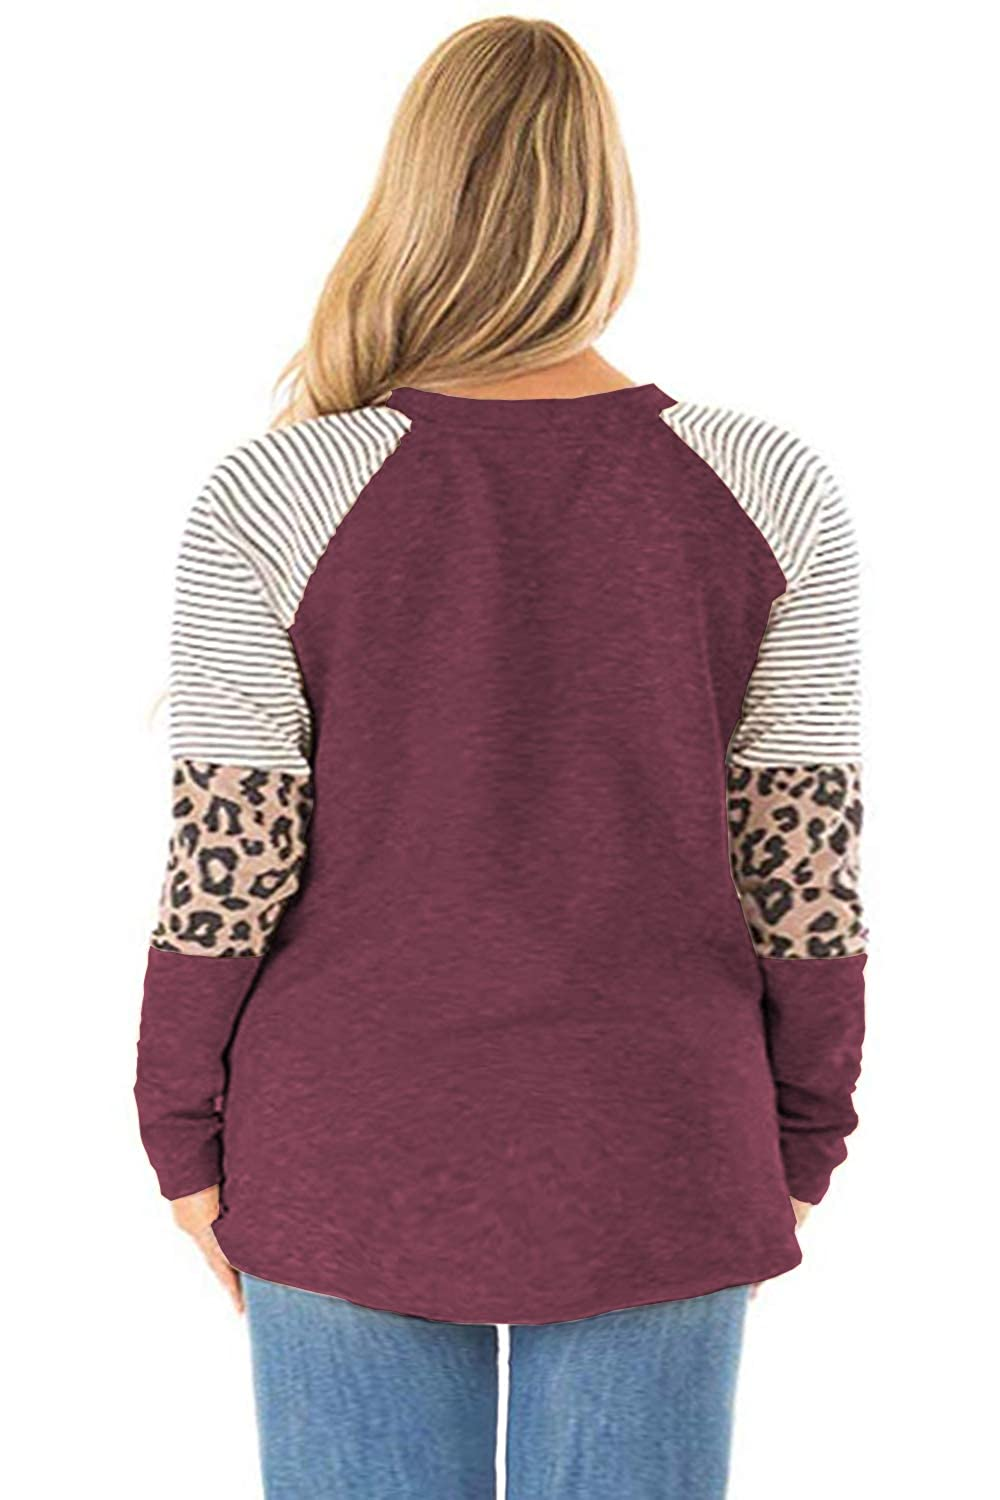 CINVIAL Womens Plus Size Tops Leopard Print Color Block Striped Tunic Long Sleeve T Shirts